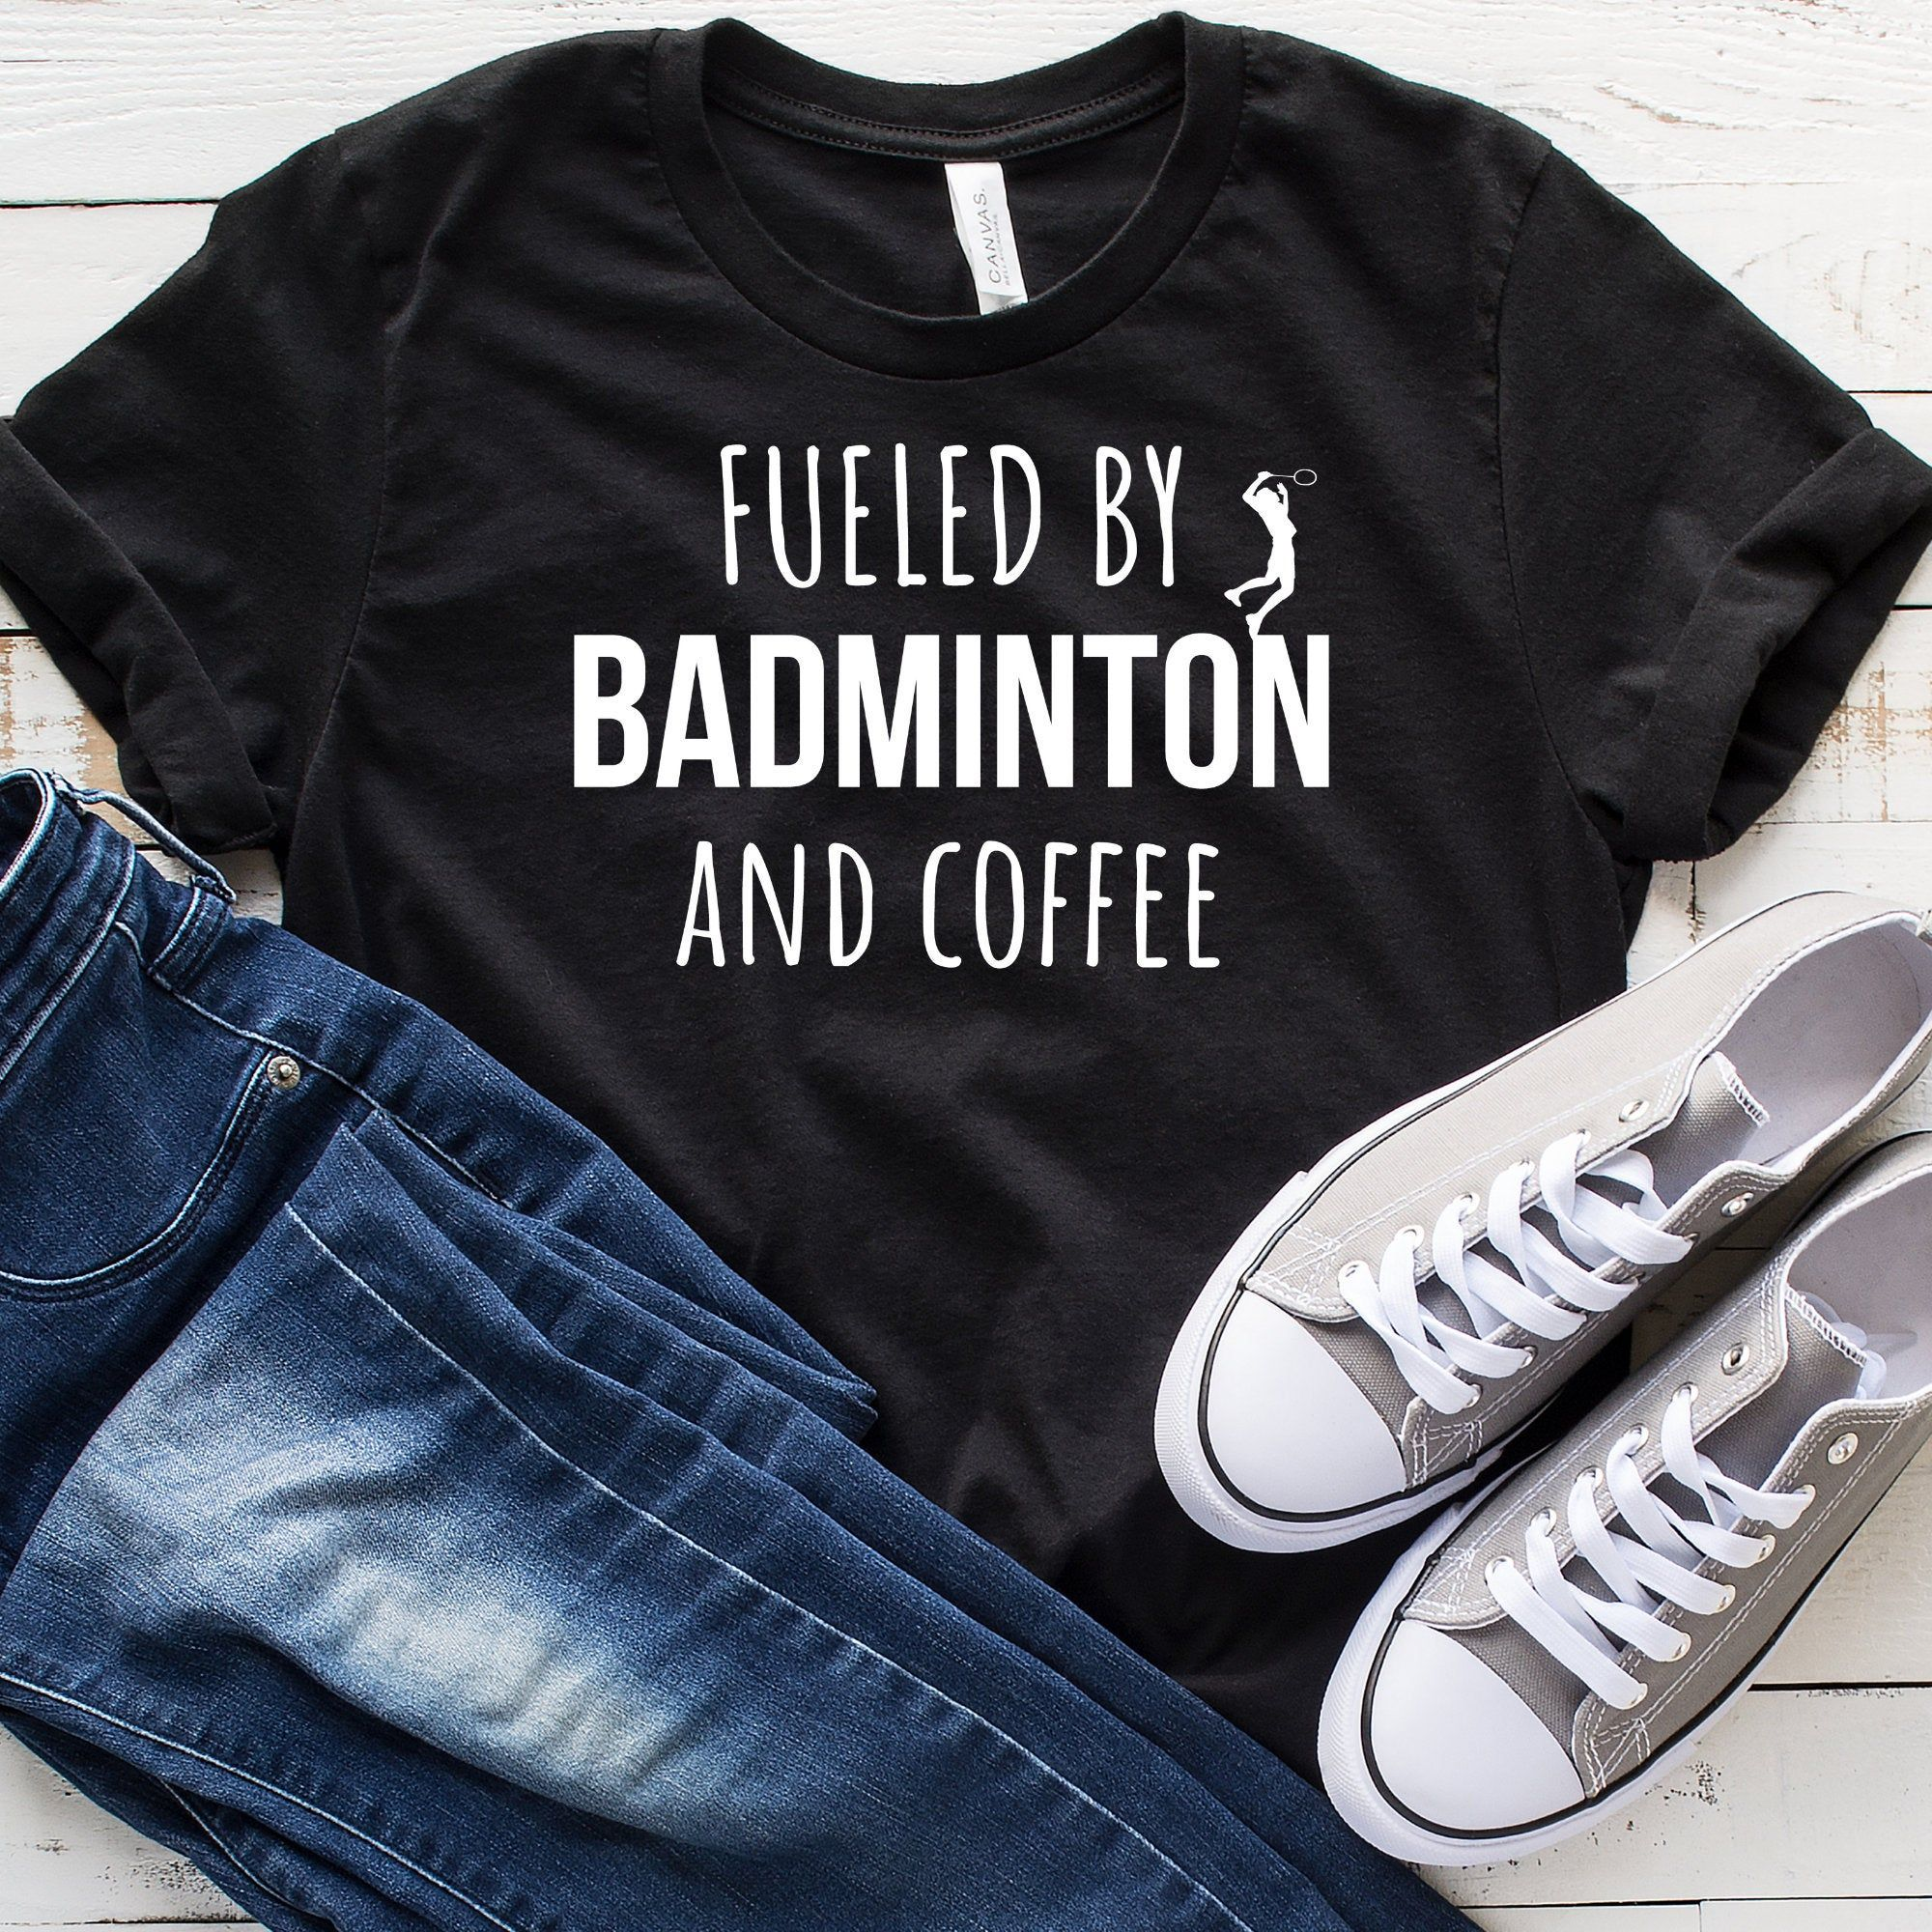 Fueled By Badminton And Coffee T-Shirt, Funny Badminton Shirt, Badminton Gift, Badminton Player, Badminton Lover, Tank top, Hoodie